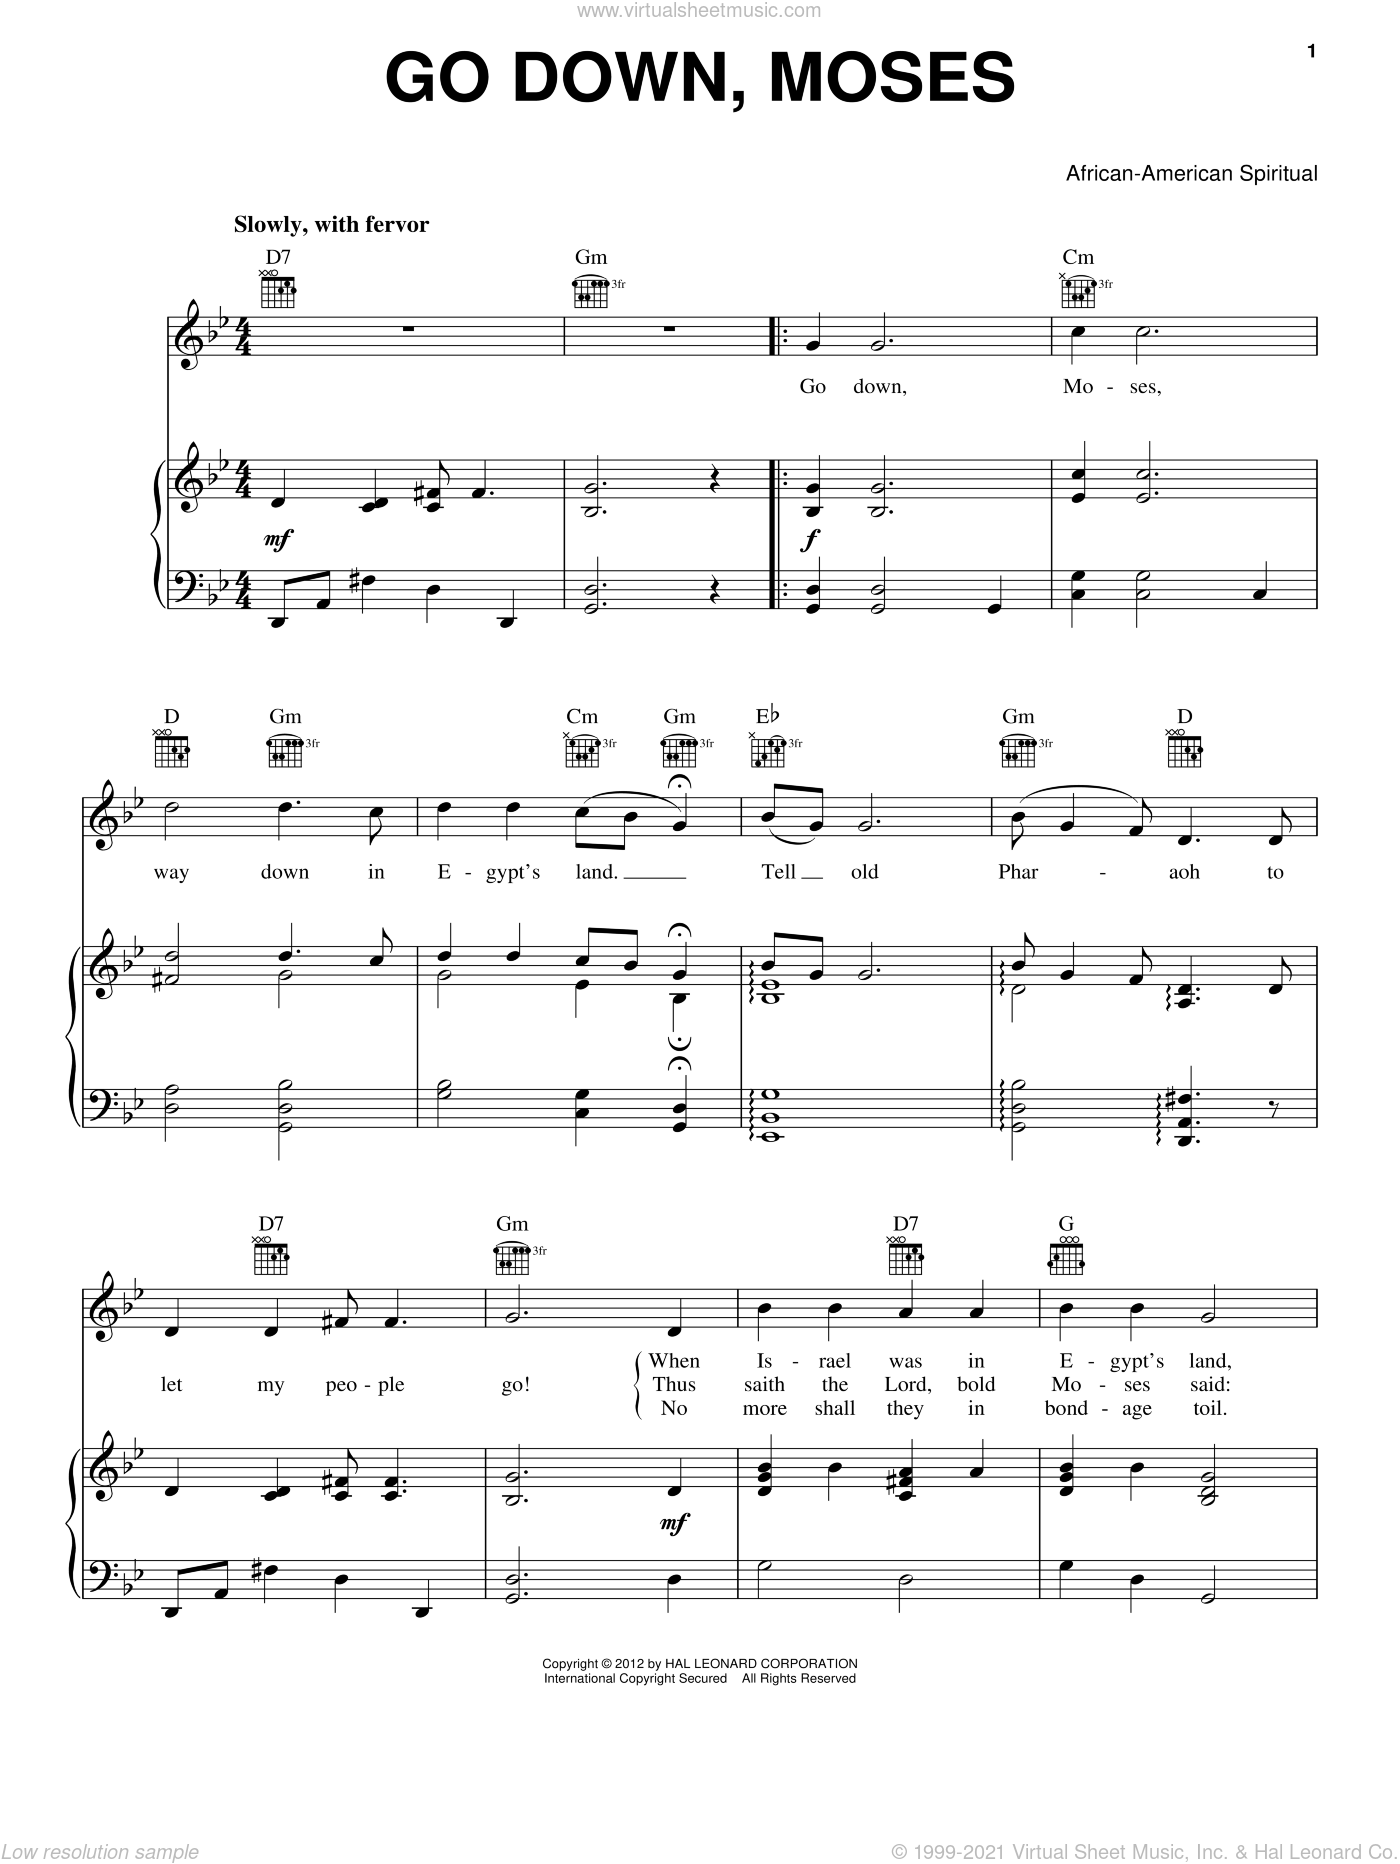 Go Down Moses sheet music for voice, piano or guitar. Score Image Preview.